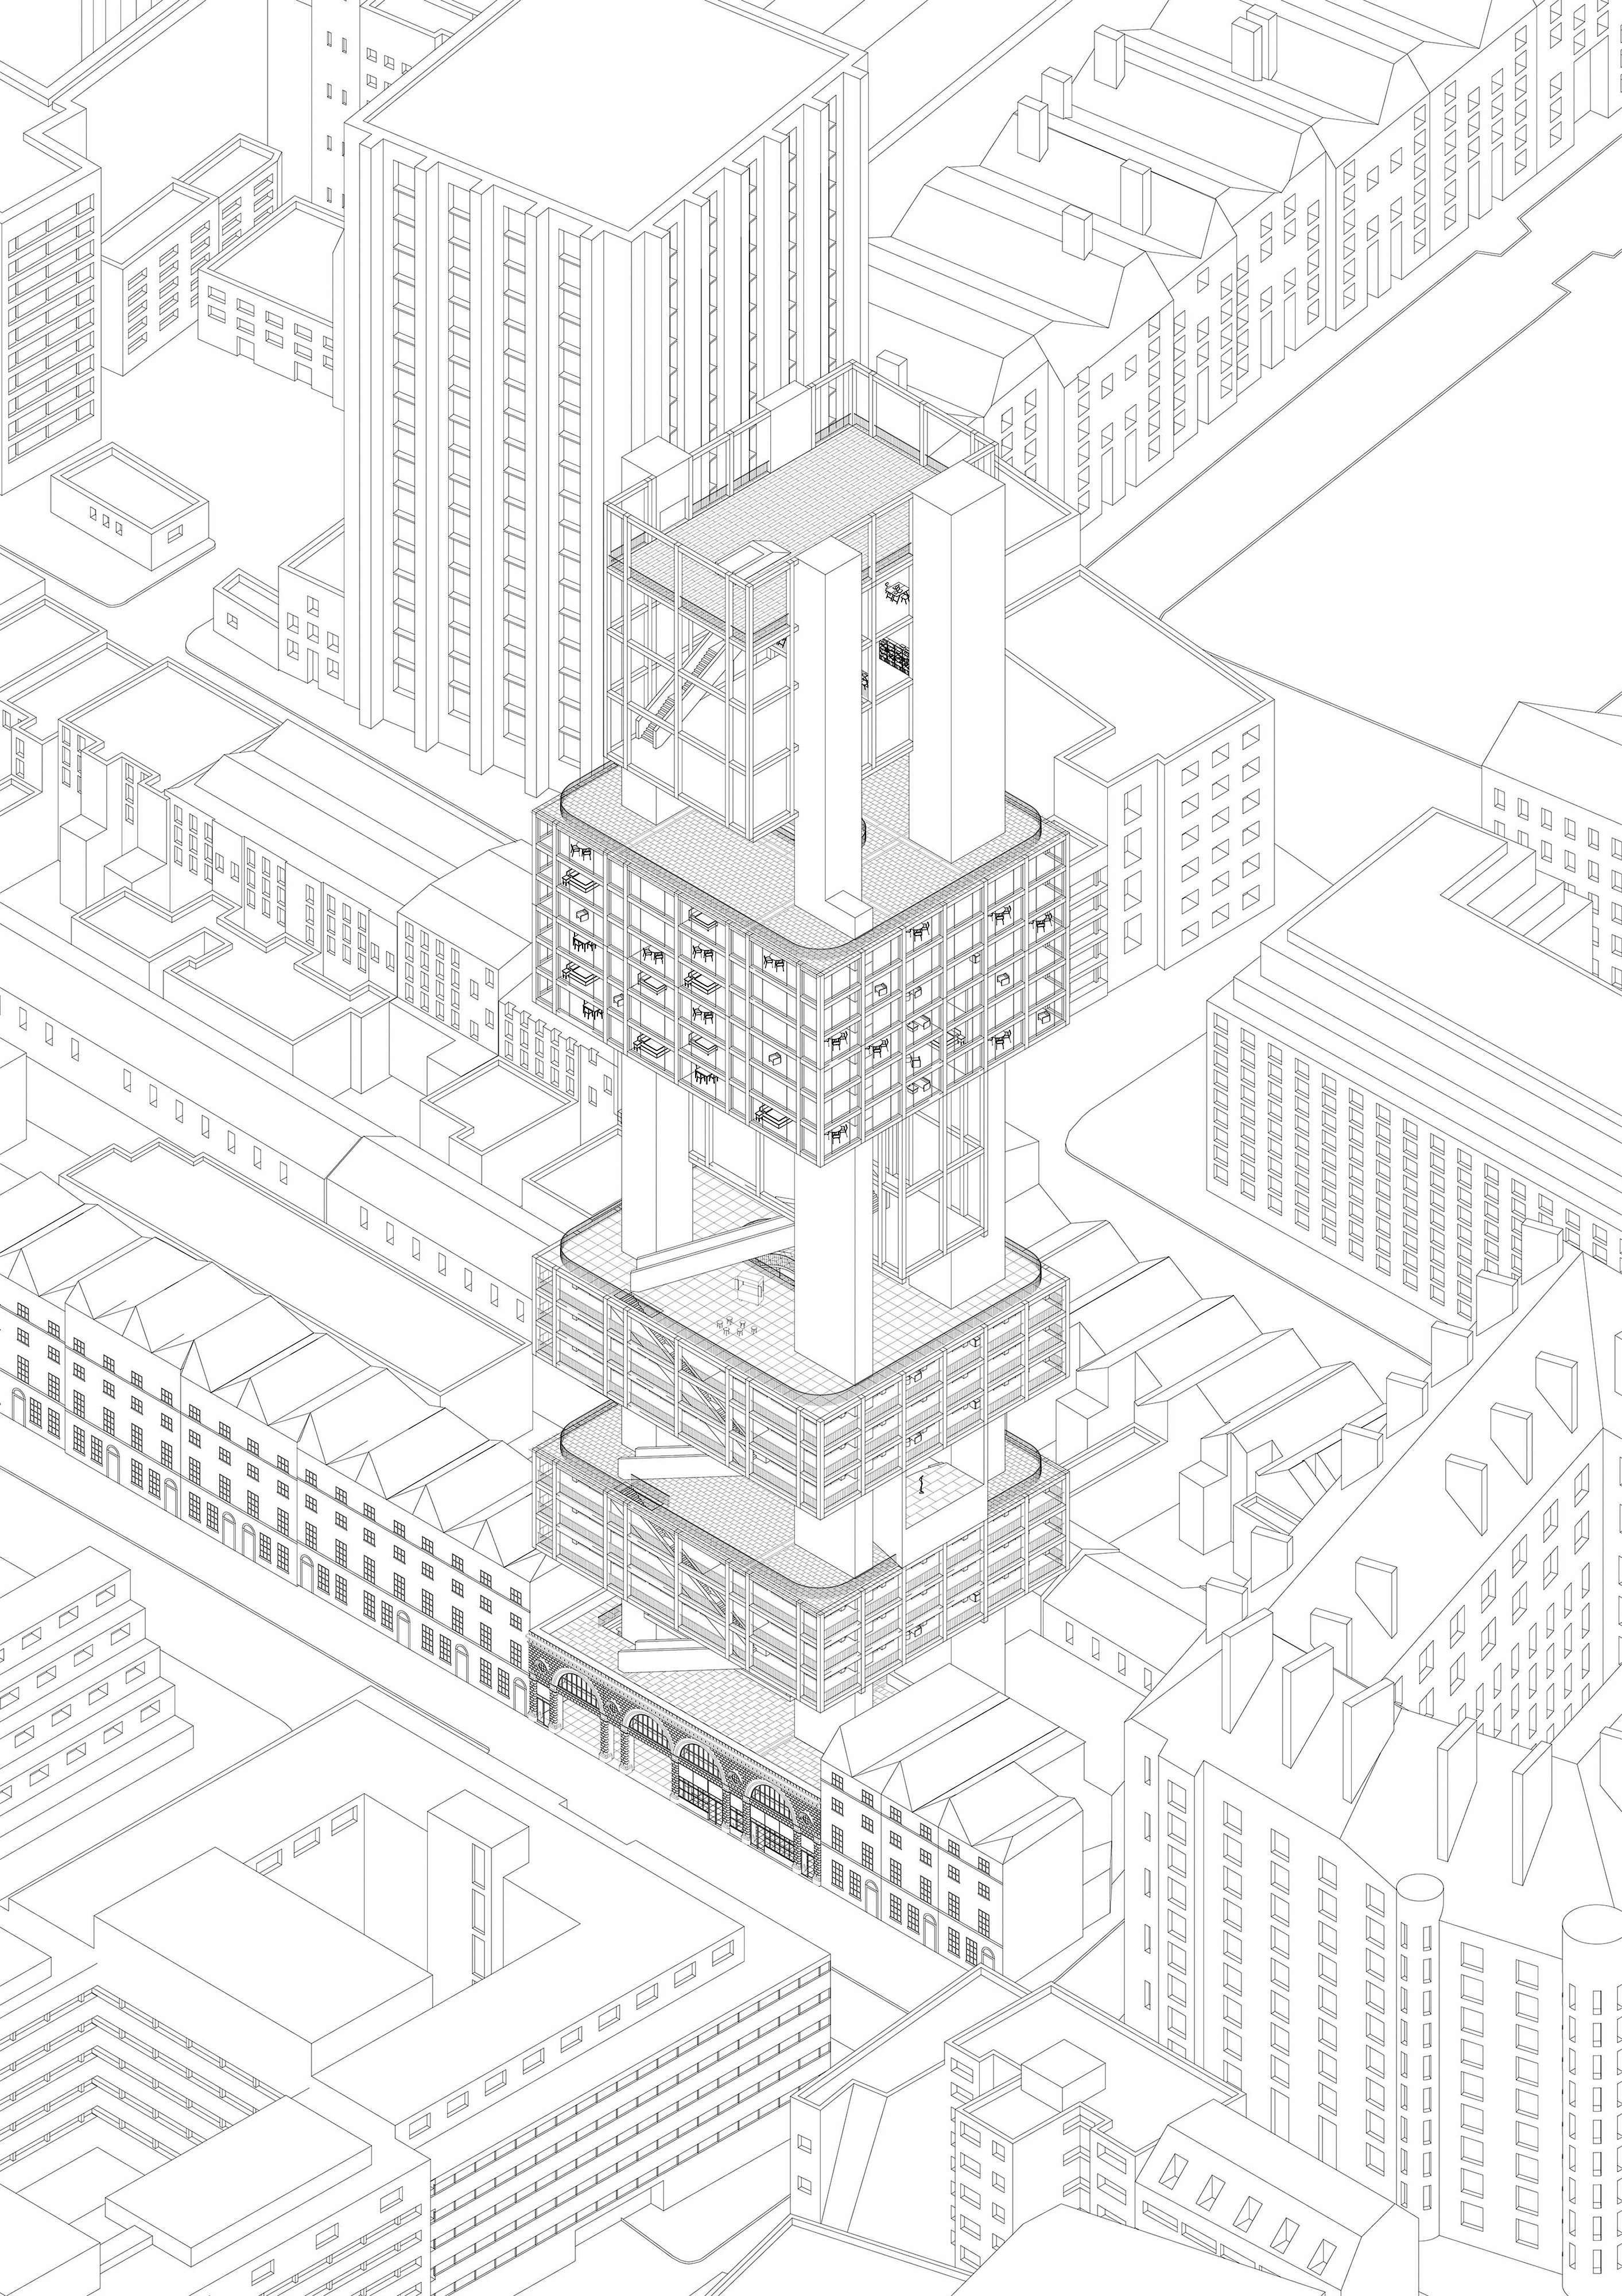 The Vertical Open City